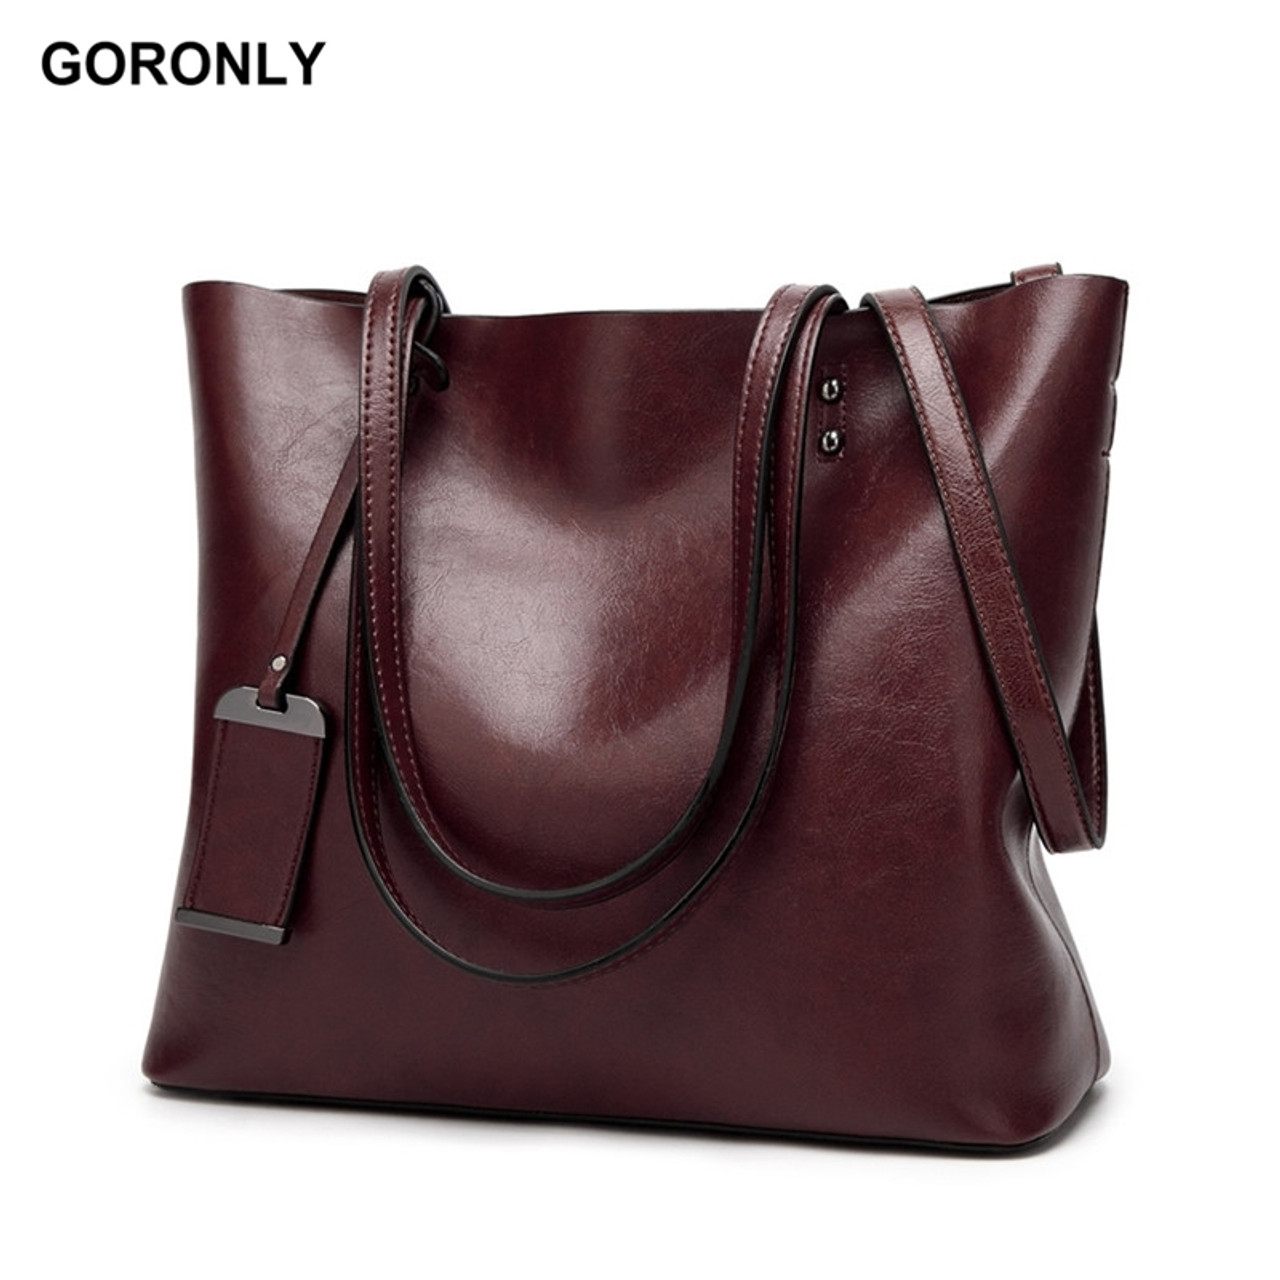 0a71683fac GORONLY Brand New Leather Tote Bag Women Handbags Designer Large Capacity  Shoulder Bags Fashion Lady Purses ...